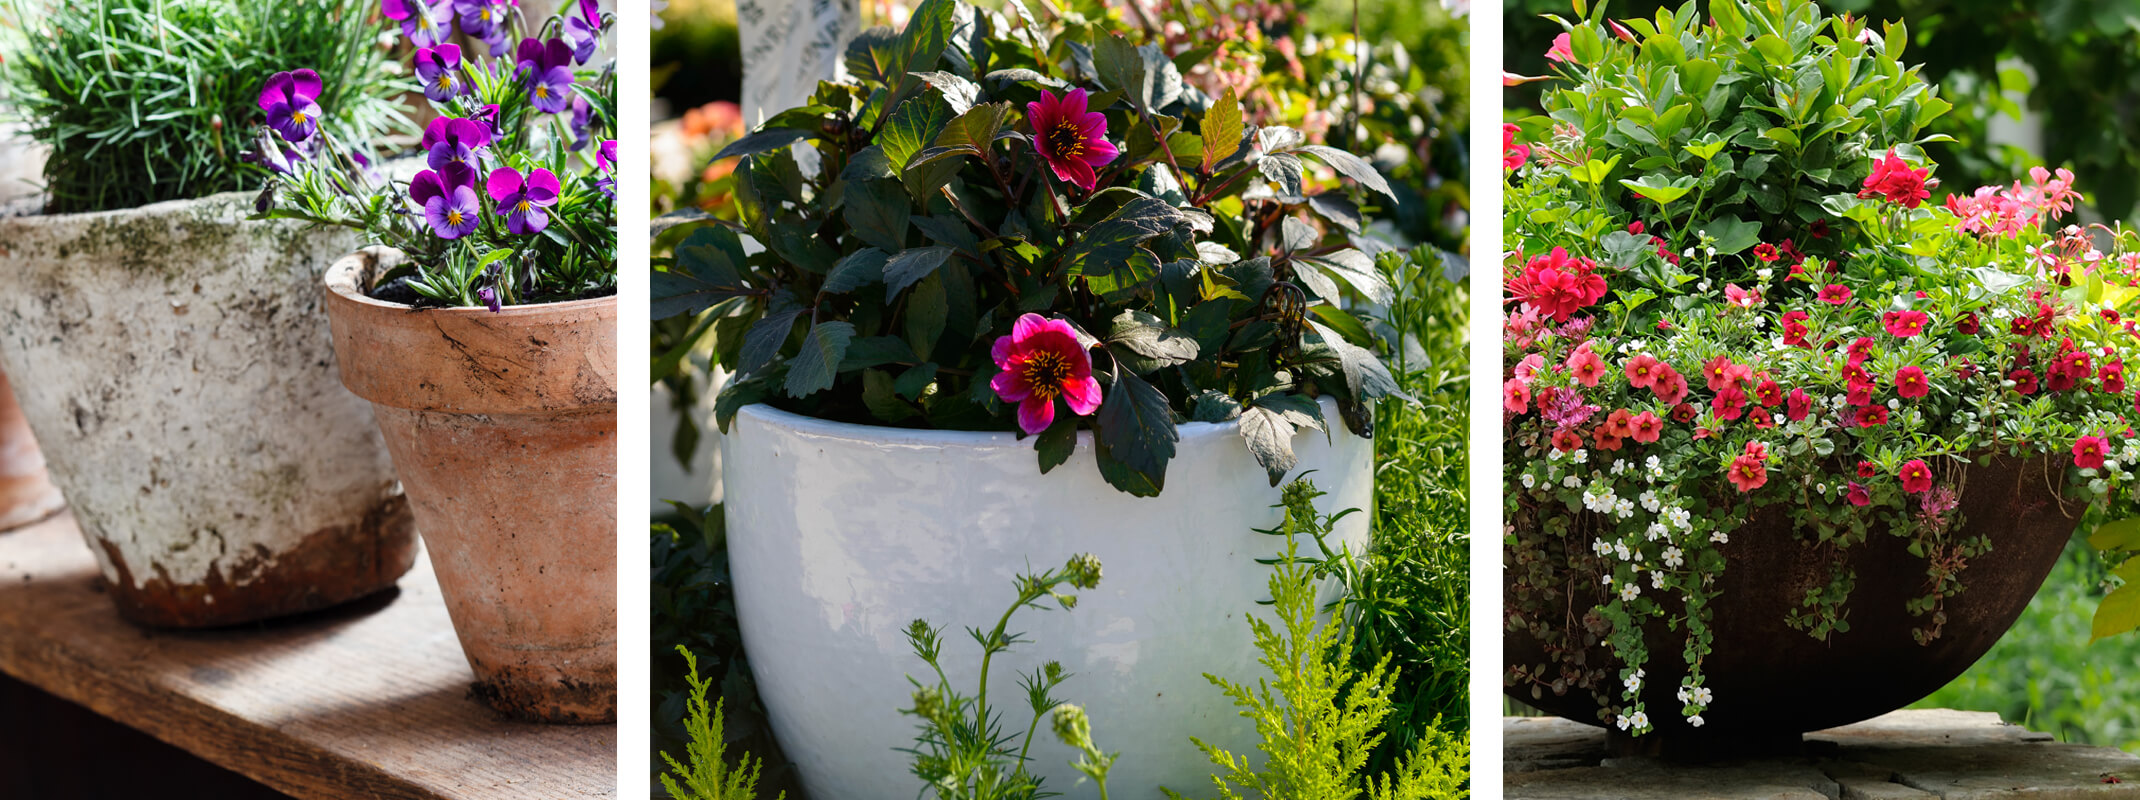 container gardening different kinds of pottery with different types of plants planted inside from terra cotta to white ceramic and mondo grass to pansies and calibrachoa